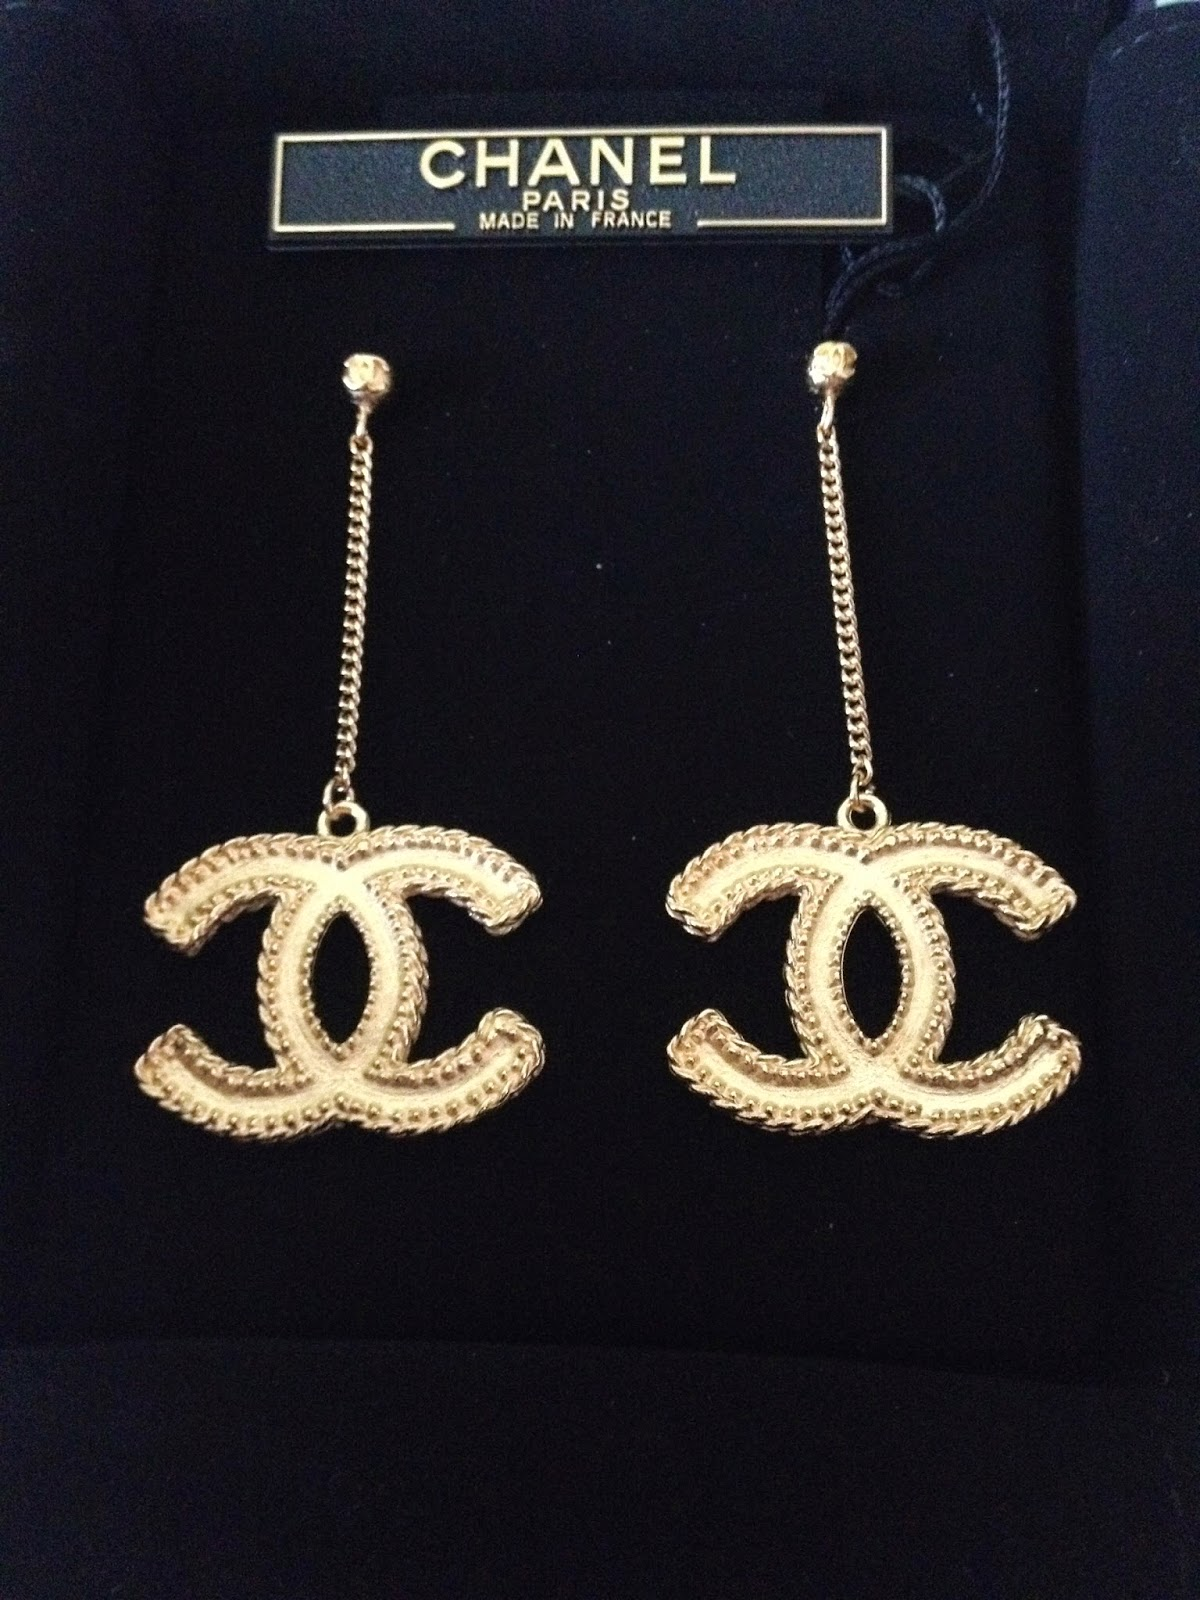 Chanel Earrings Review Product Chanel Earrings LARGE CC LOGO Gold